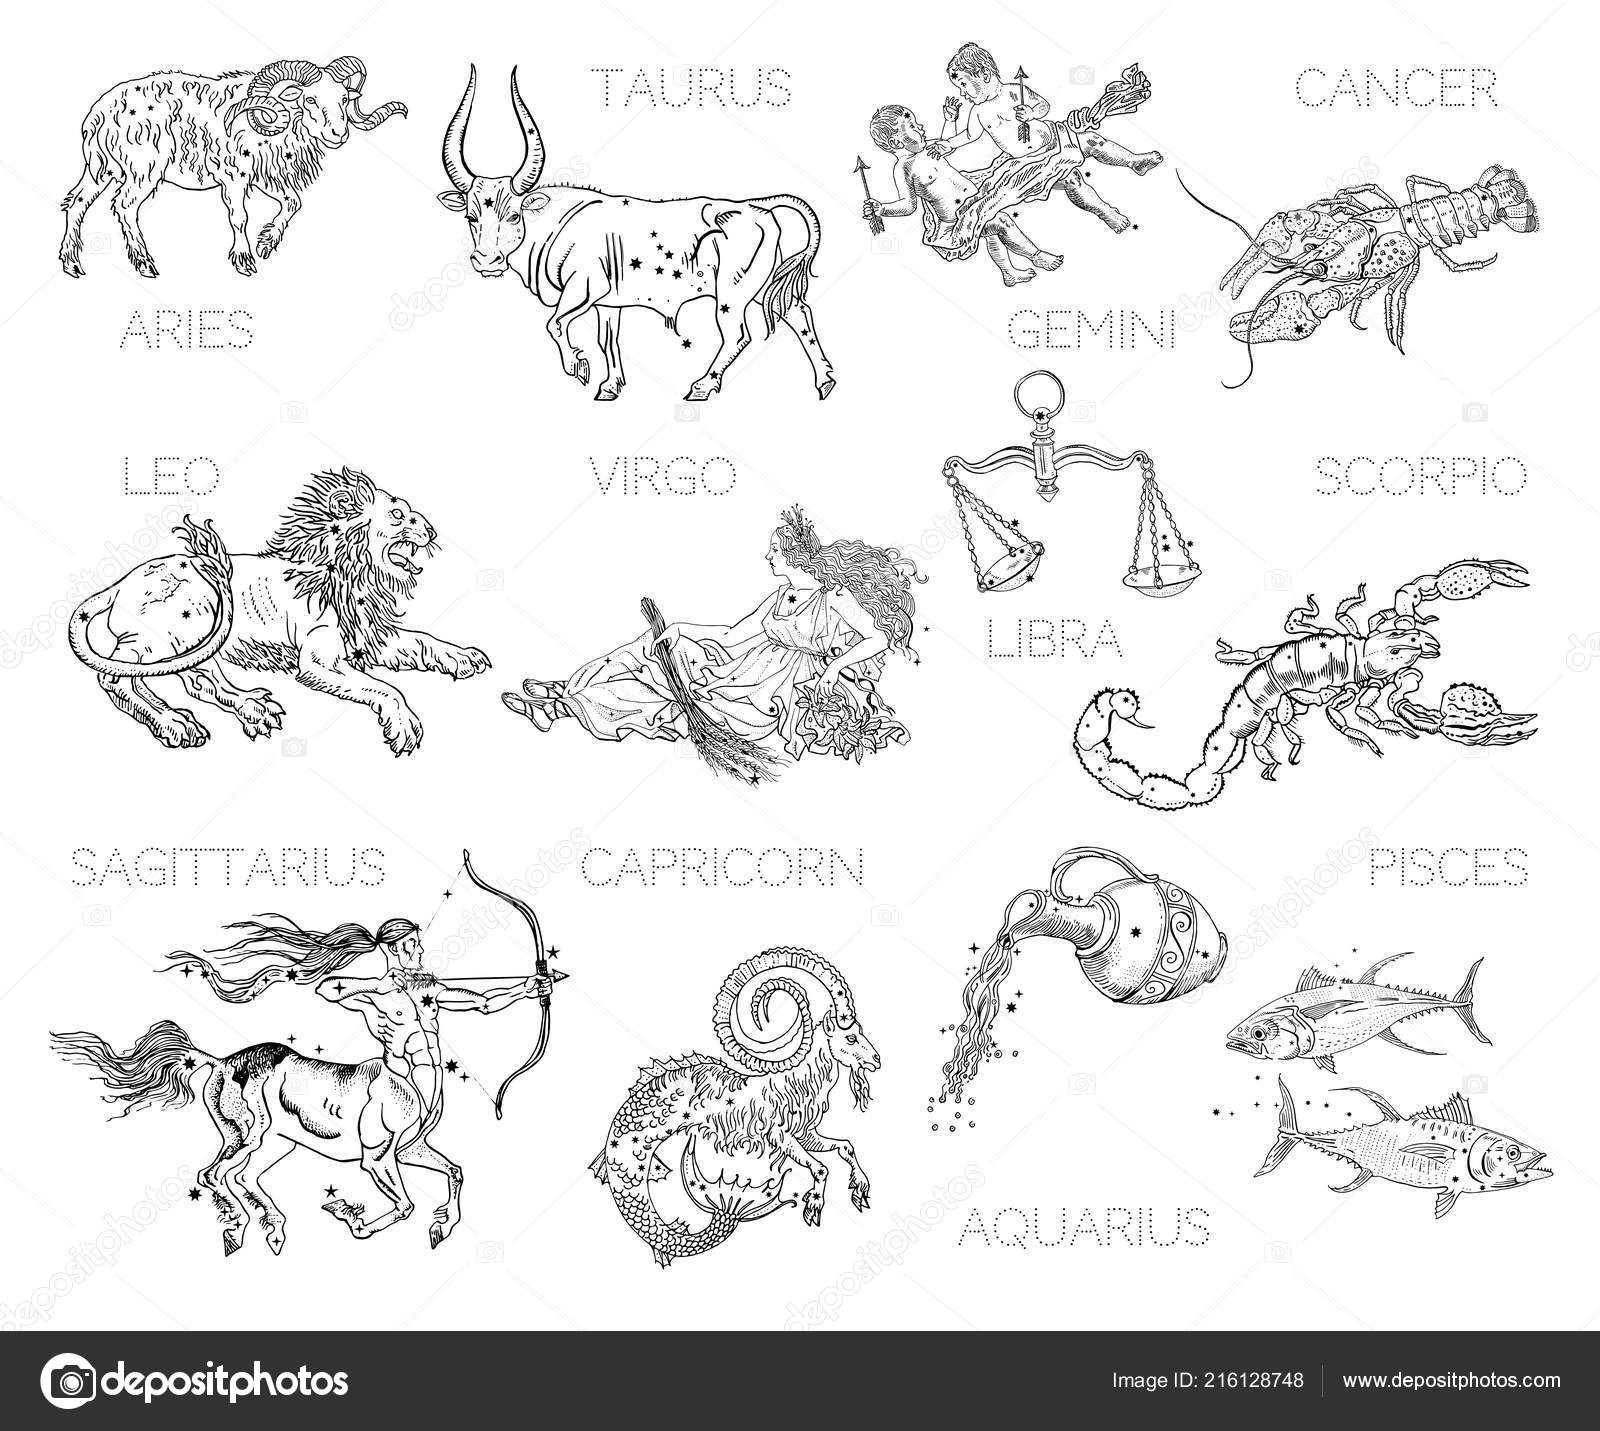 fbedd89be Vintage engraving tattoo style drawings isolated on white.– stock  illustration. Constellations, zodiac signs ...